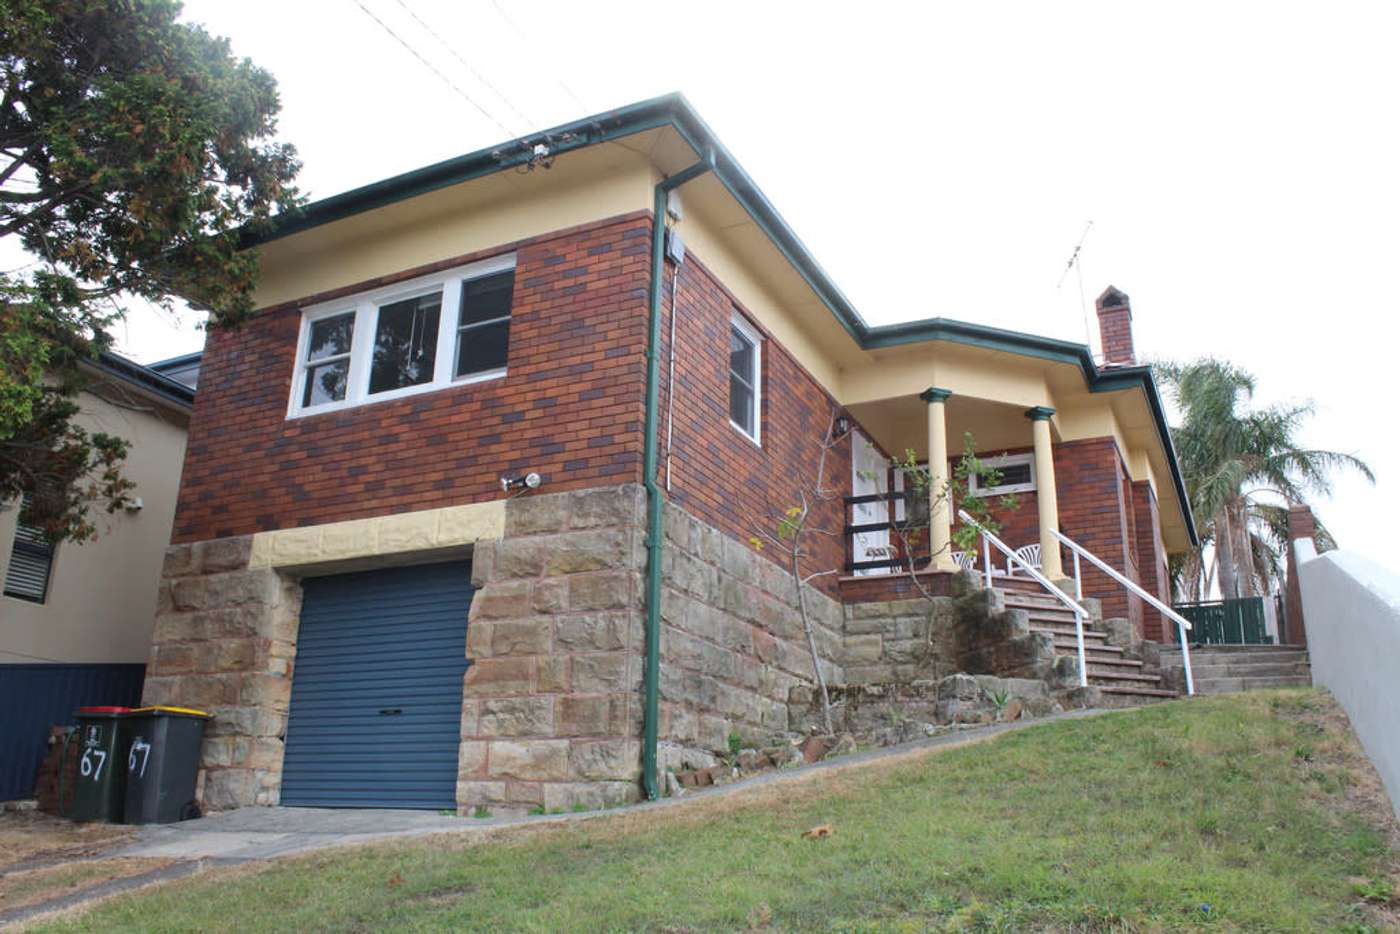 Main view of Homely house listing, 67 VILLIERS ST, Rockdale NSW 2216